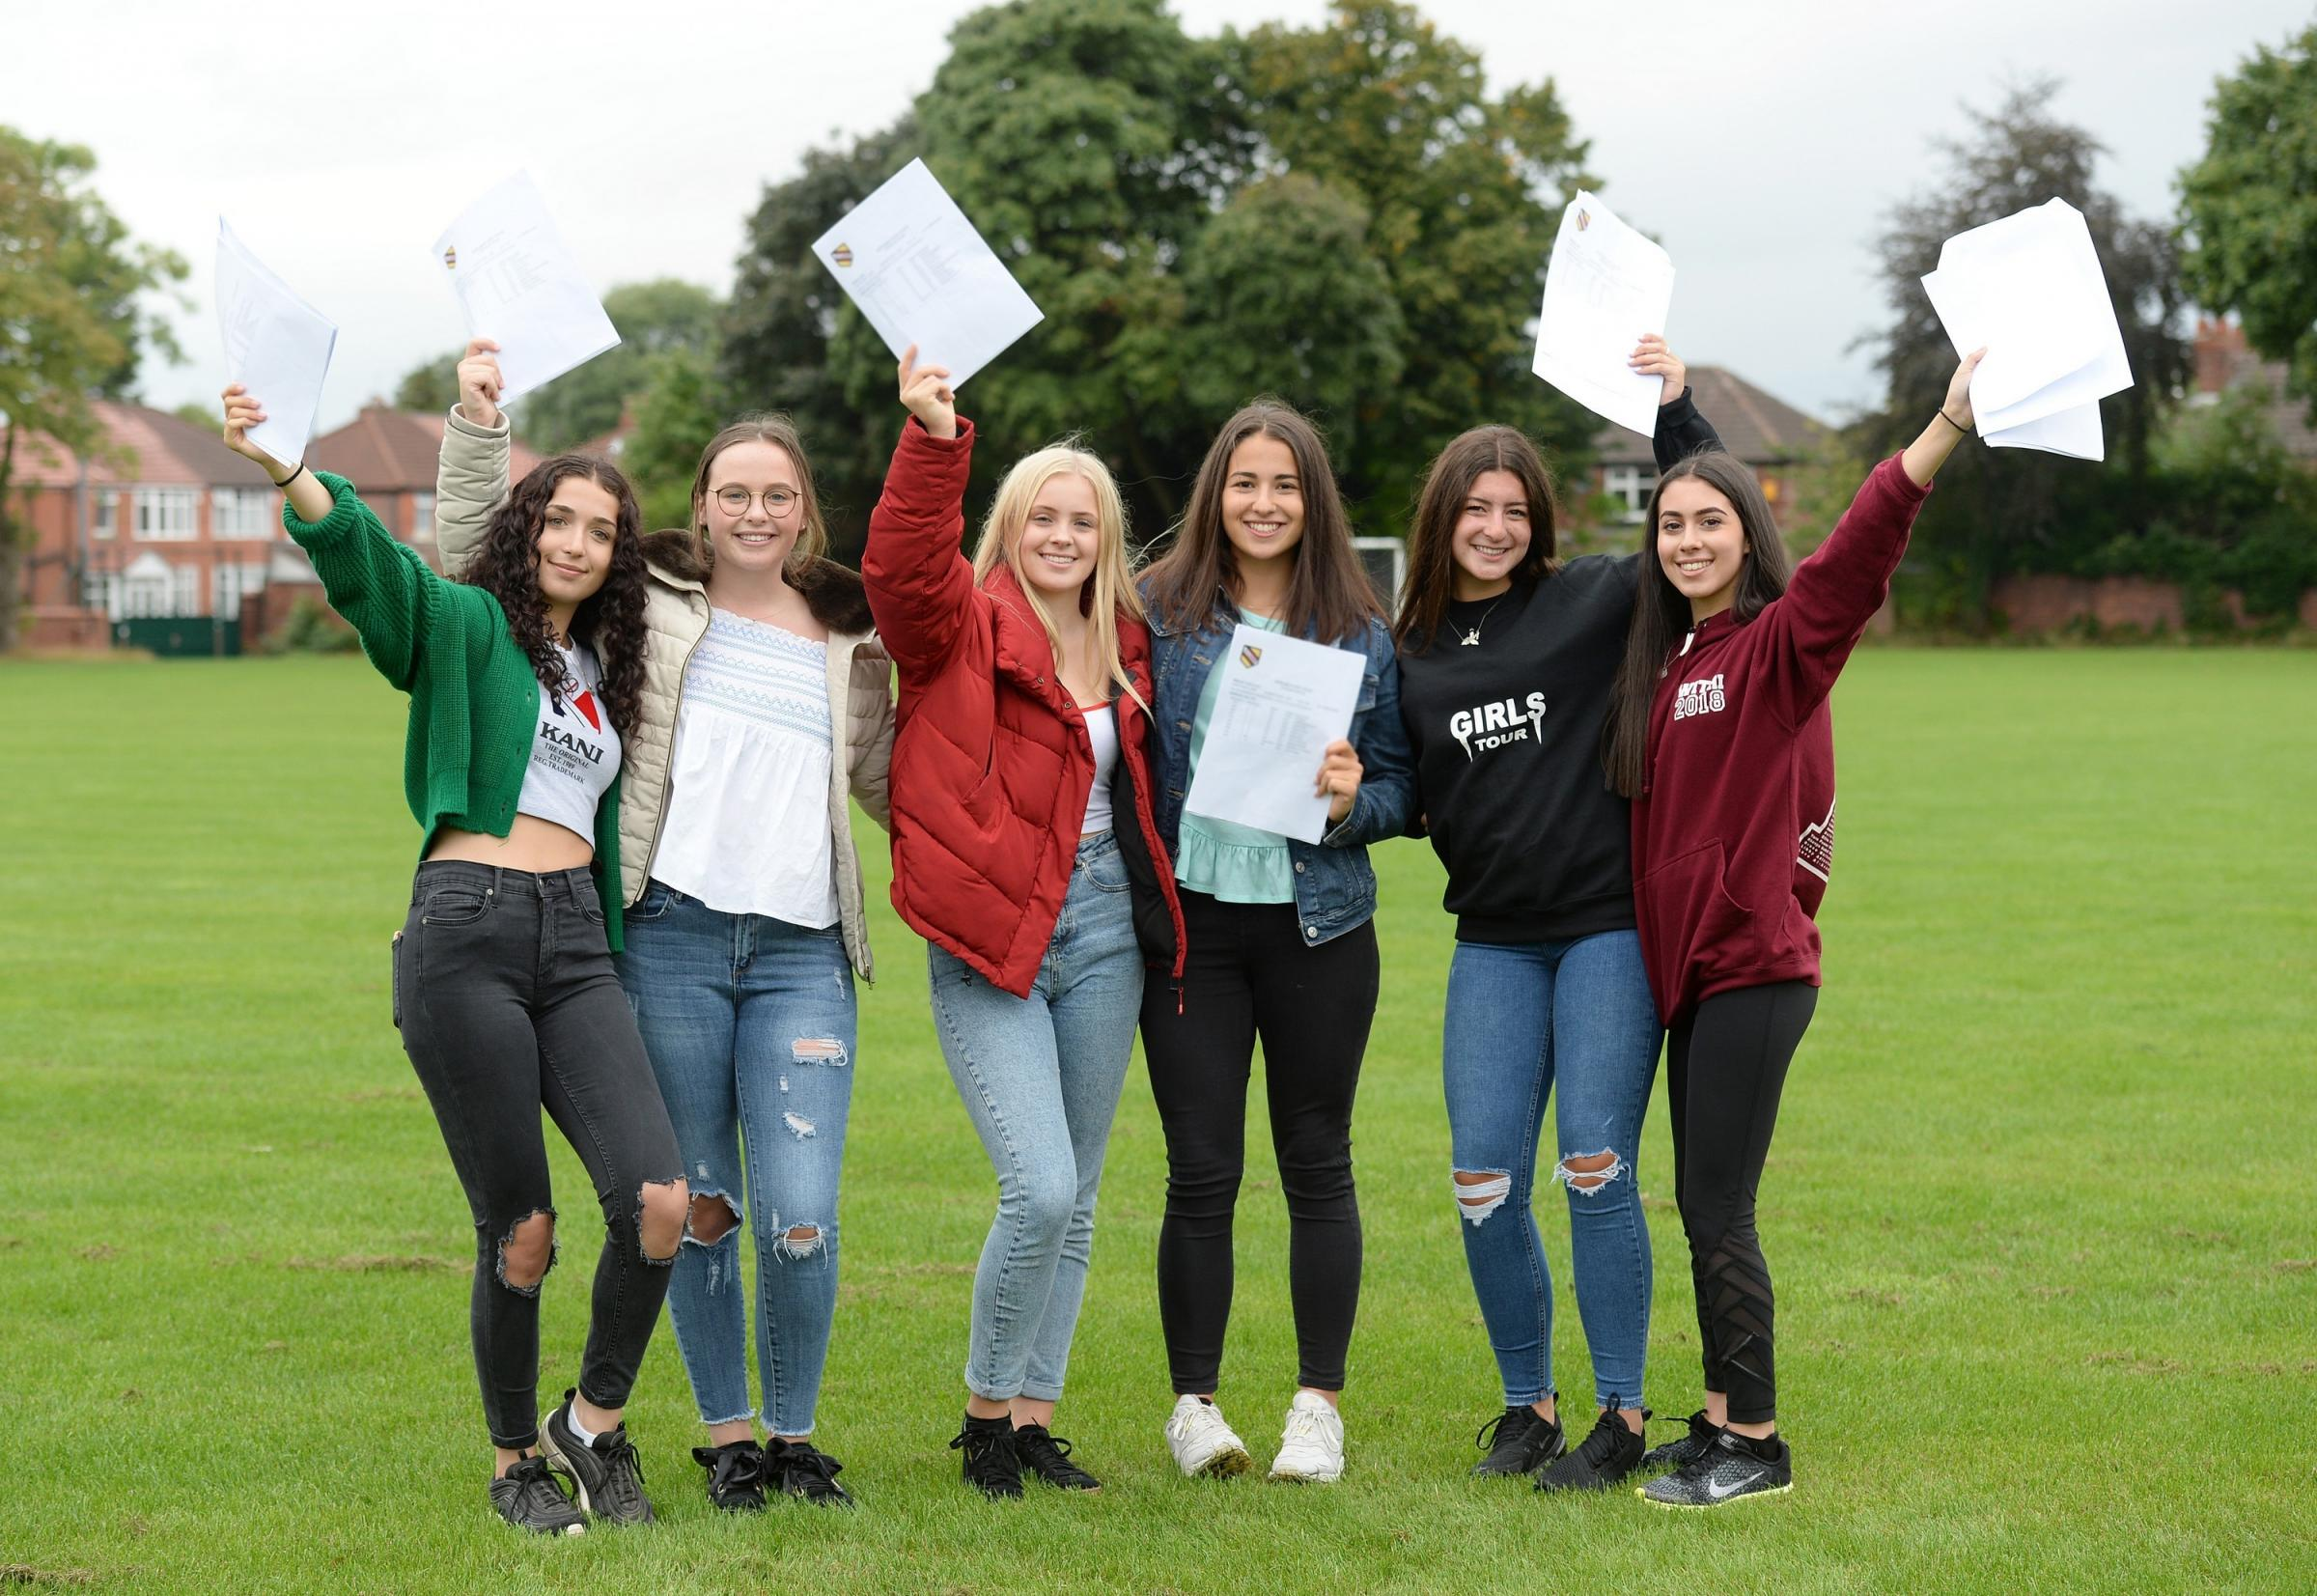 Pupils from the Trafford have made an outstanding contribution to Withington Girls' School's raft of excellent GCSE results this year.